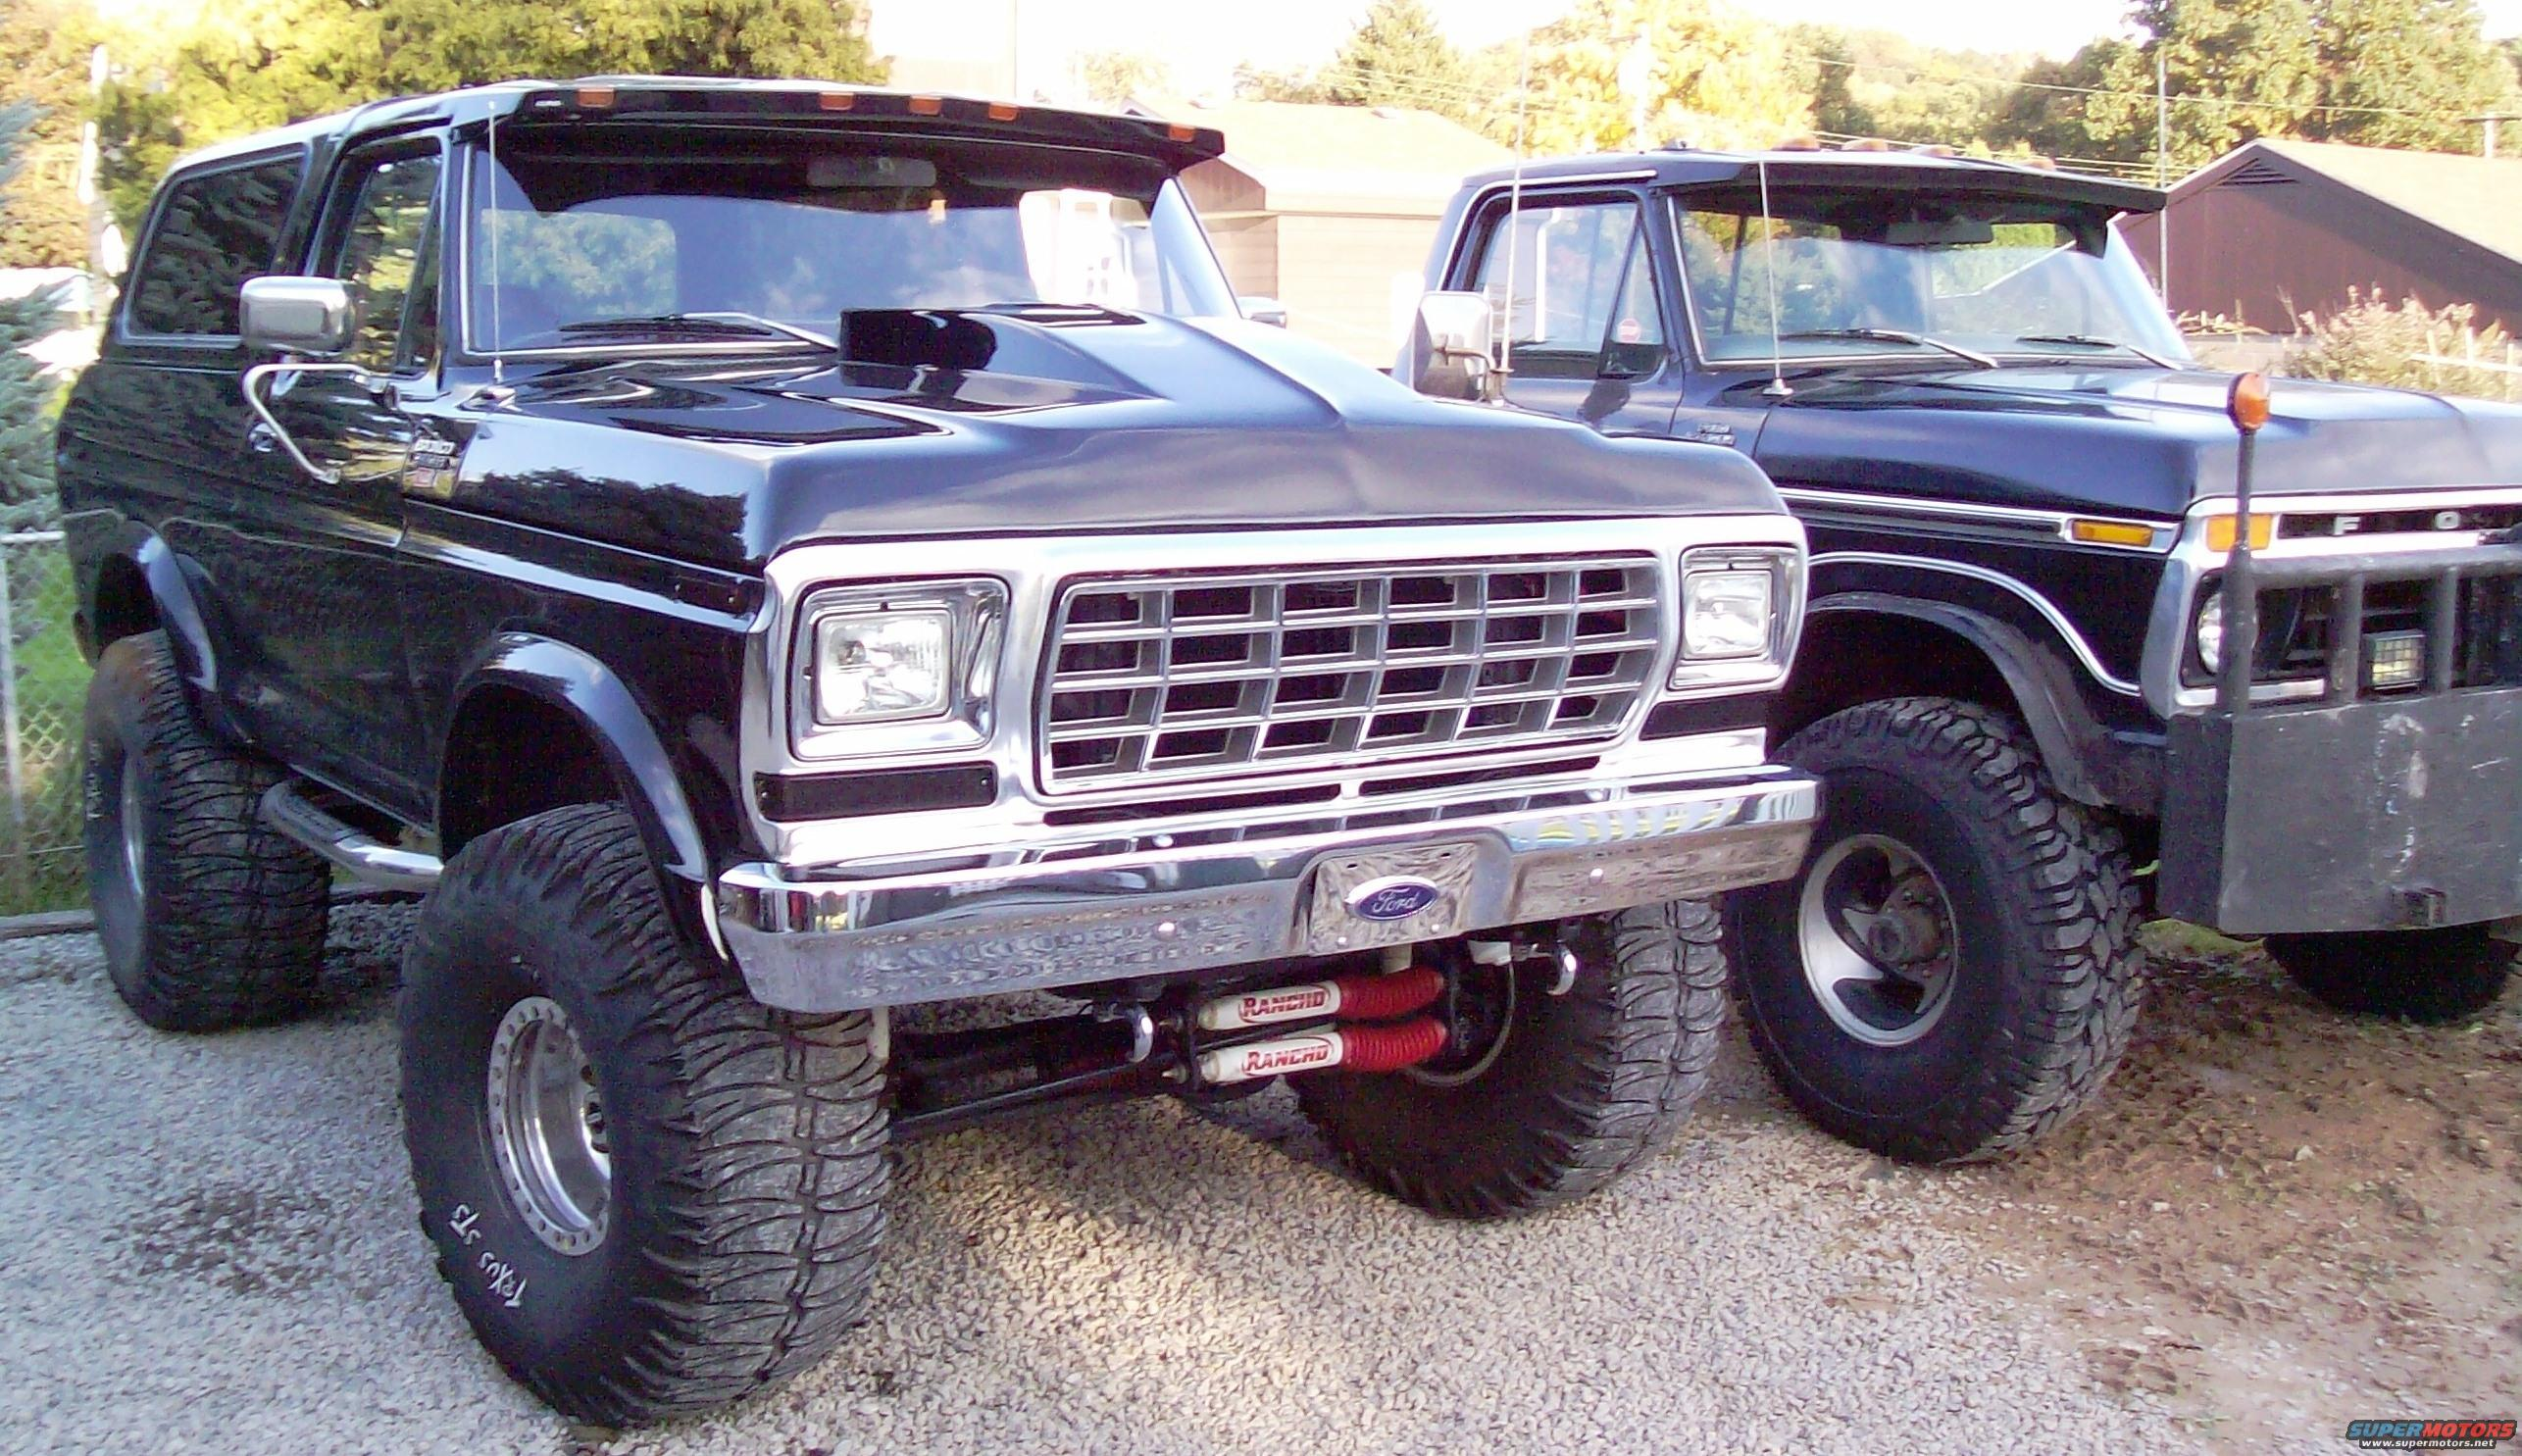 1978 Ford Bronco ford trucks picture | SuperMotors.net